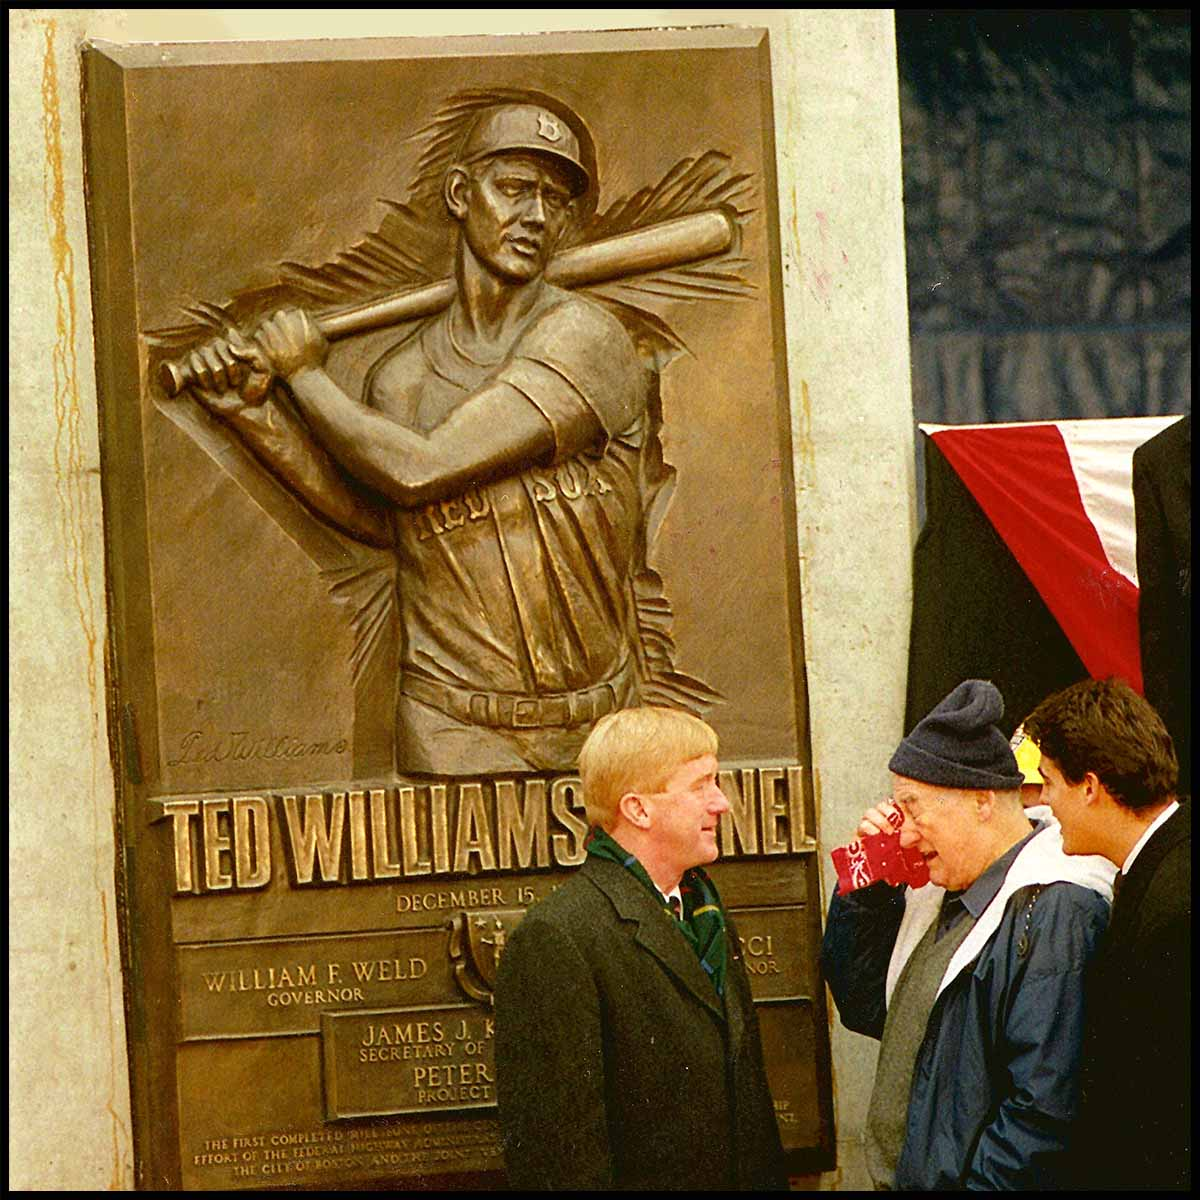 photo of bronze relief of Ted Williams batting with people at dedication